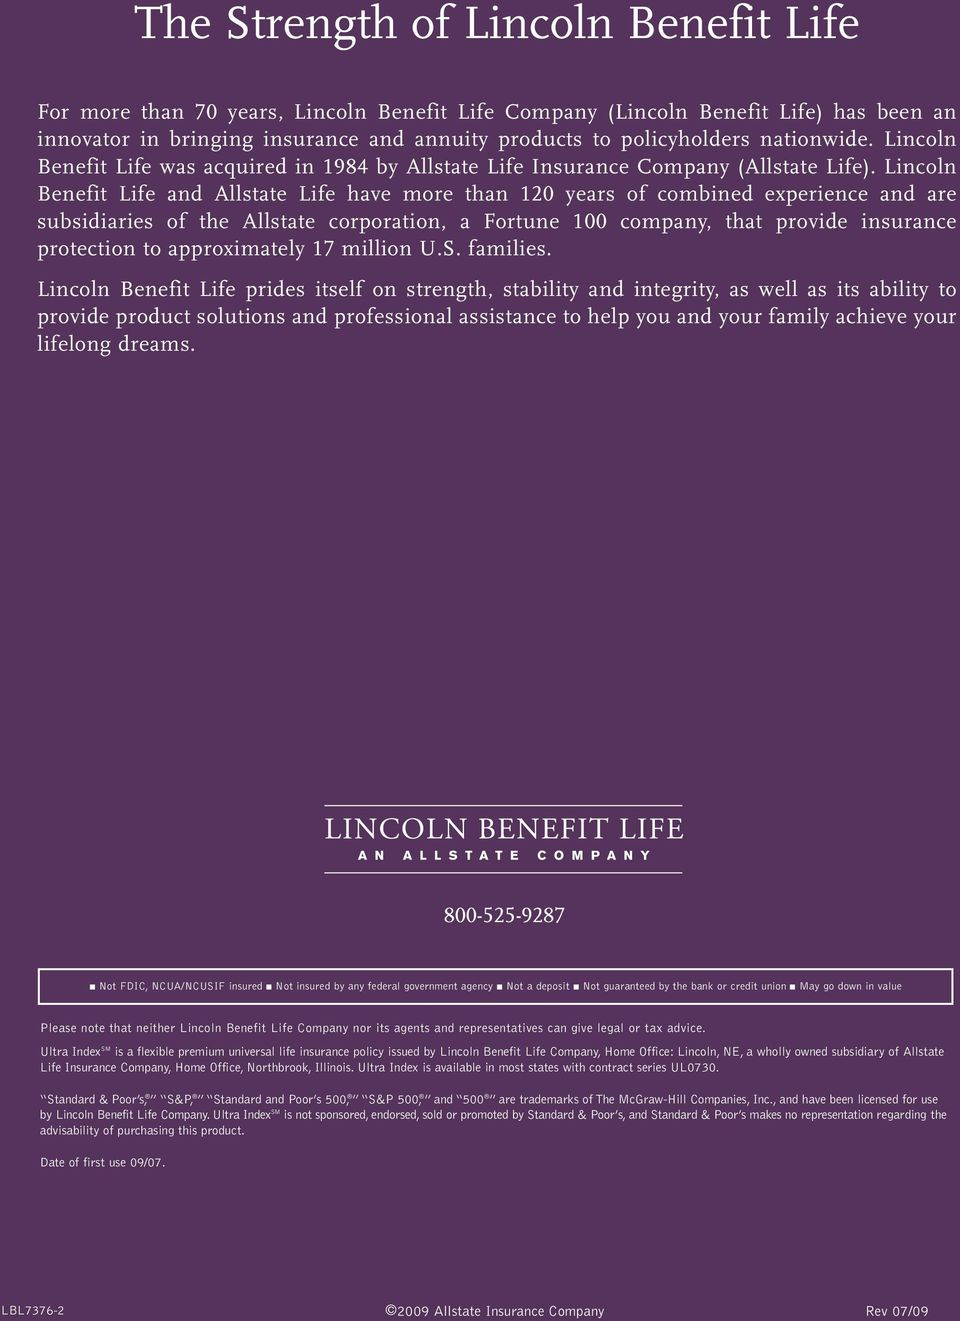 Lincoln Benefit Life and Allstate Life have more than 120 years of combined experience and are subsidiaries of the Allstate corporation, a Fortune 100 company, that provide insurance protection to